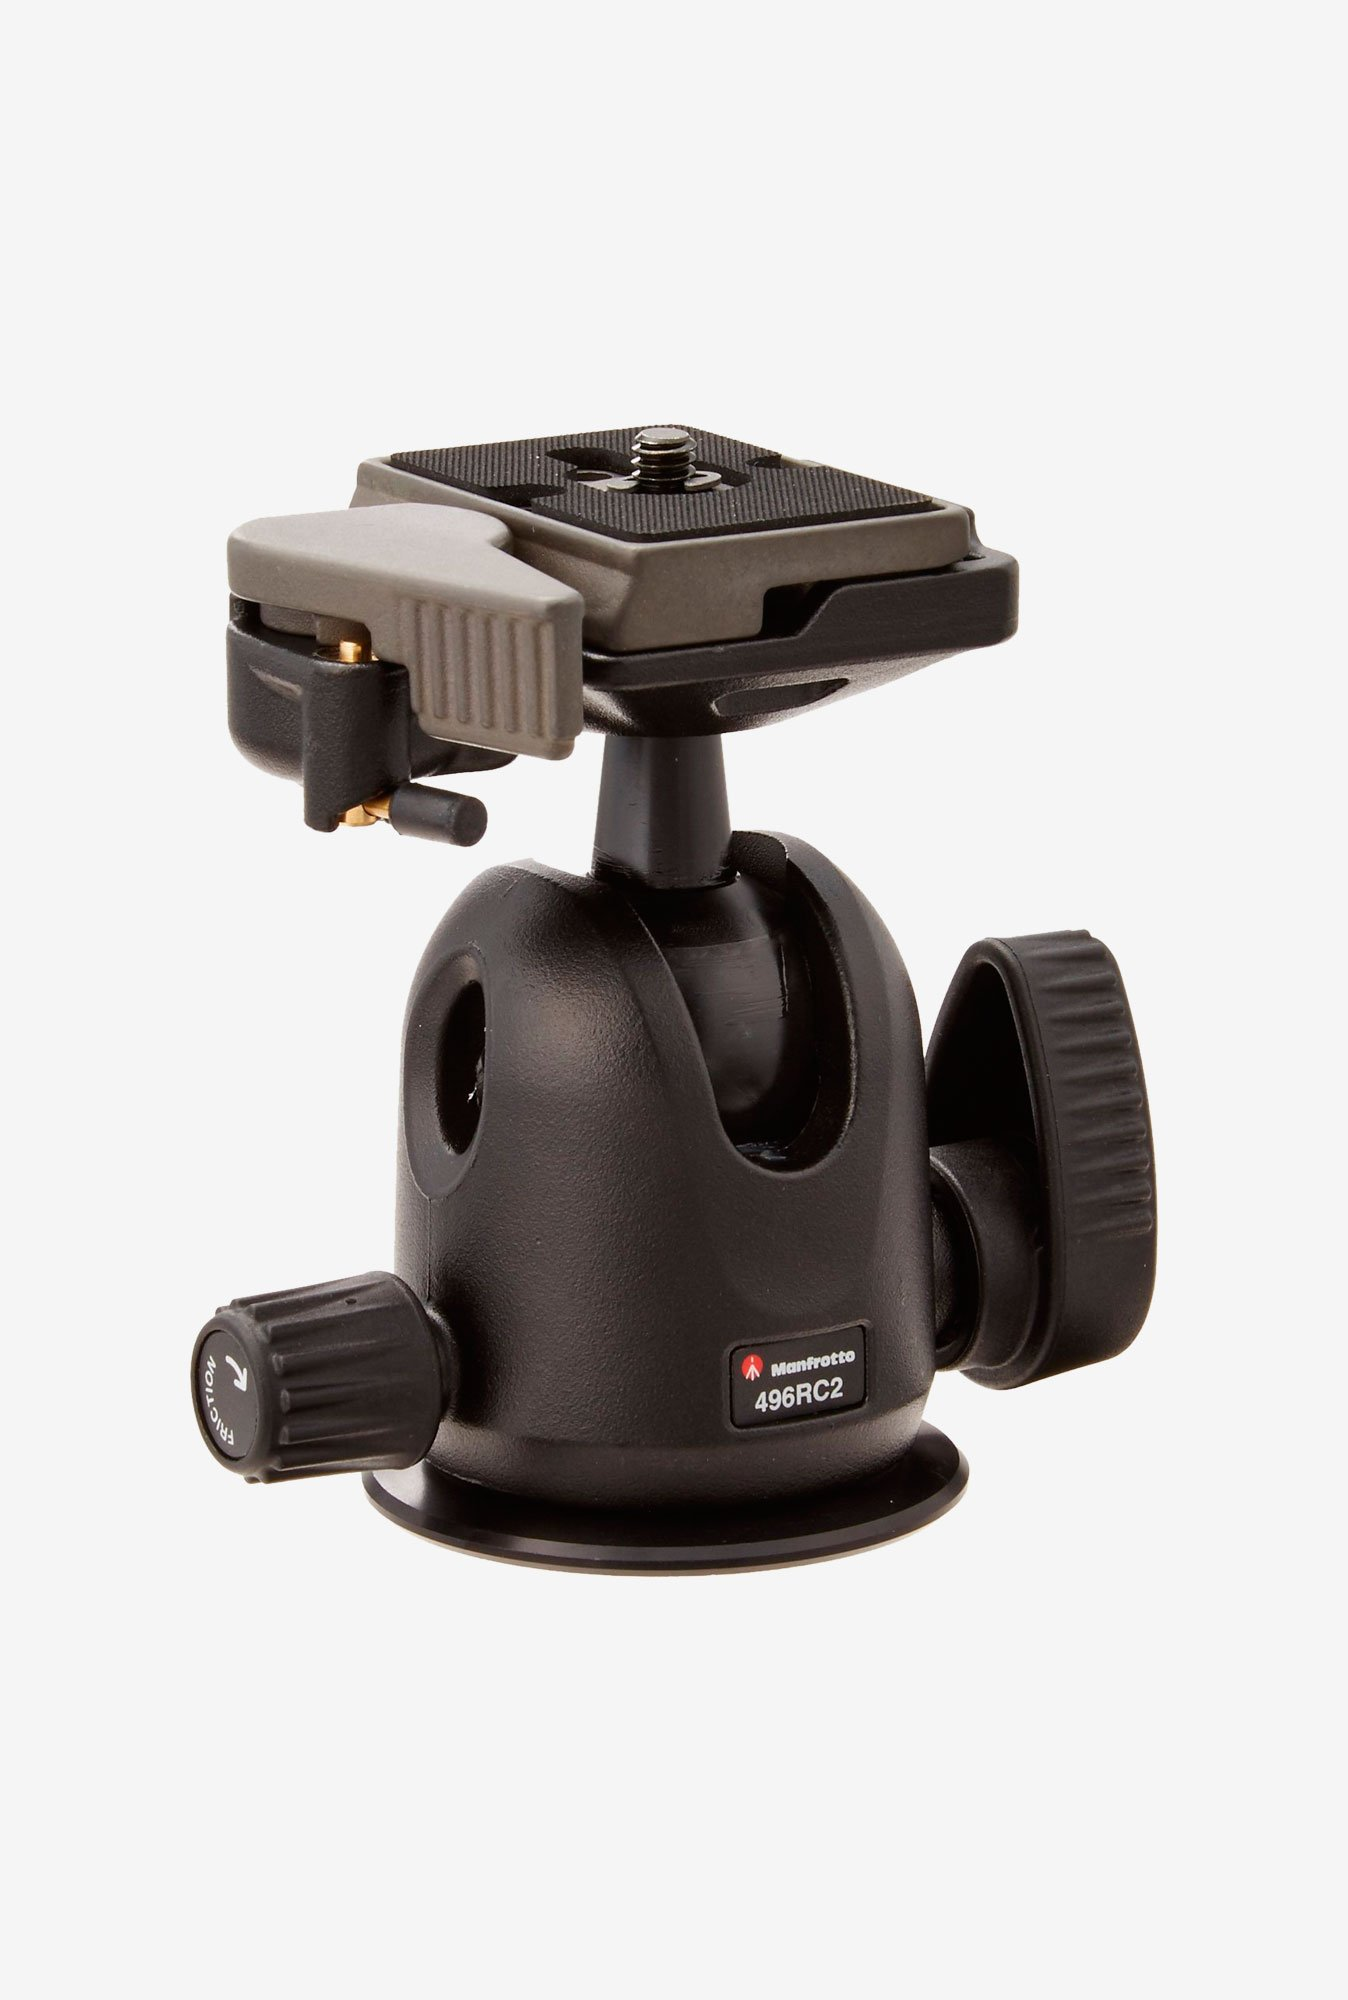 Manfrotto 496RC2 Compact Ball Head Black